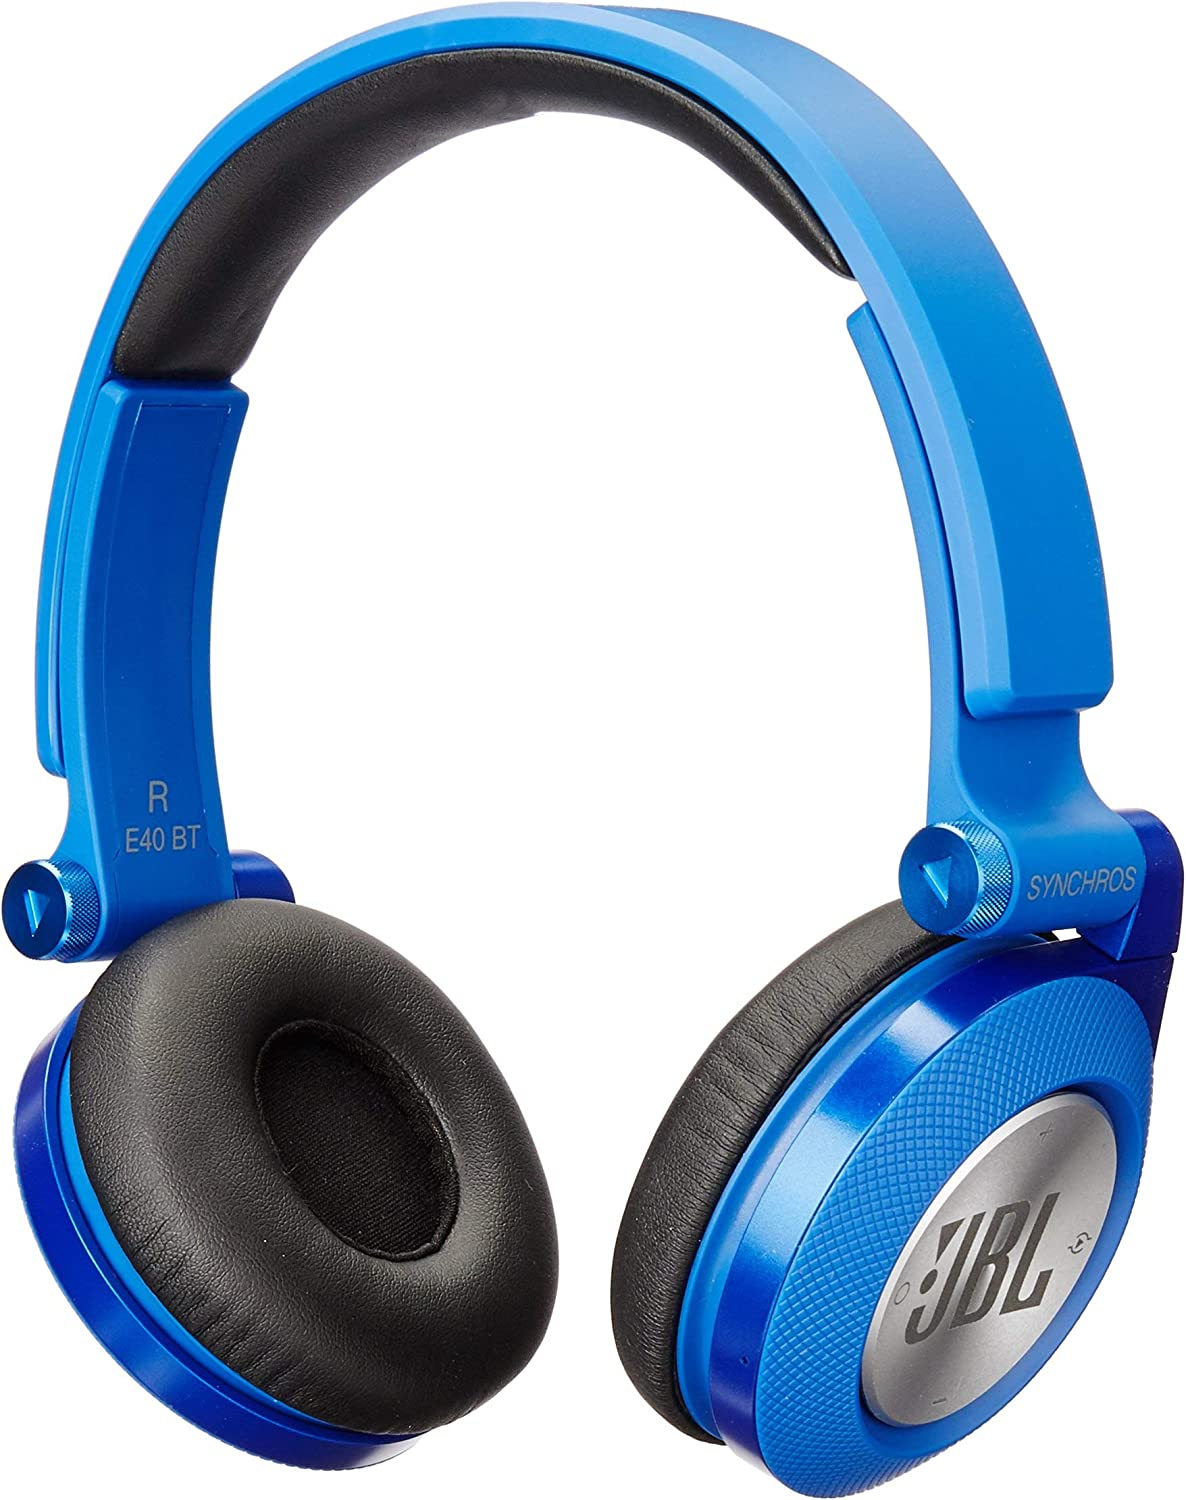 JBL E40BT Blue High-Performance Wireless On-Ear Bluetooth Stereo Headphone, Blue (Renewed)